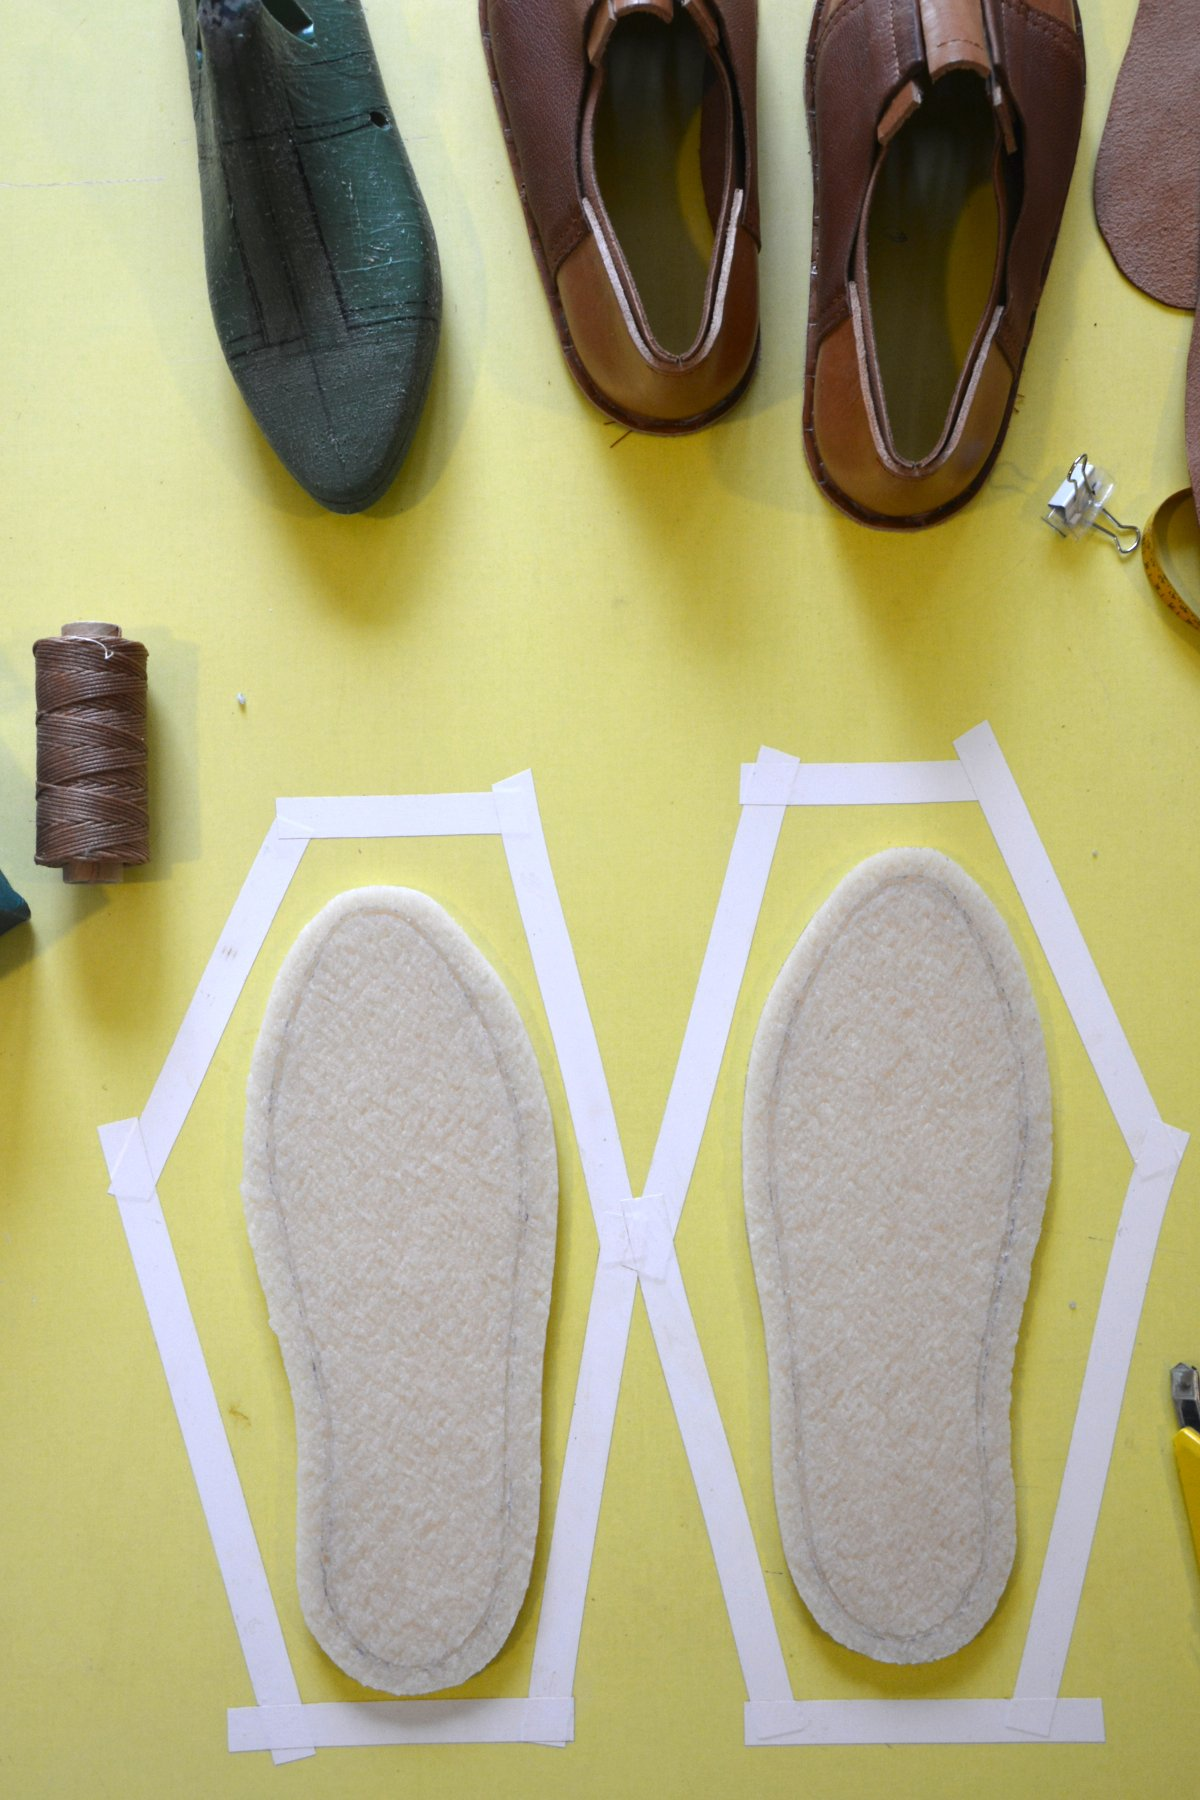 cut channel for outsole stitch